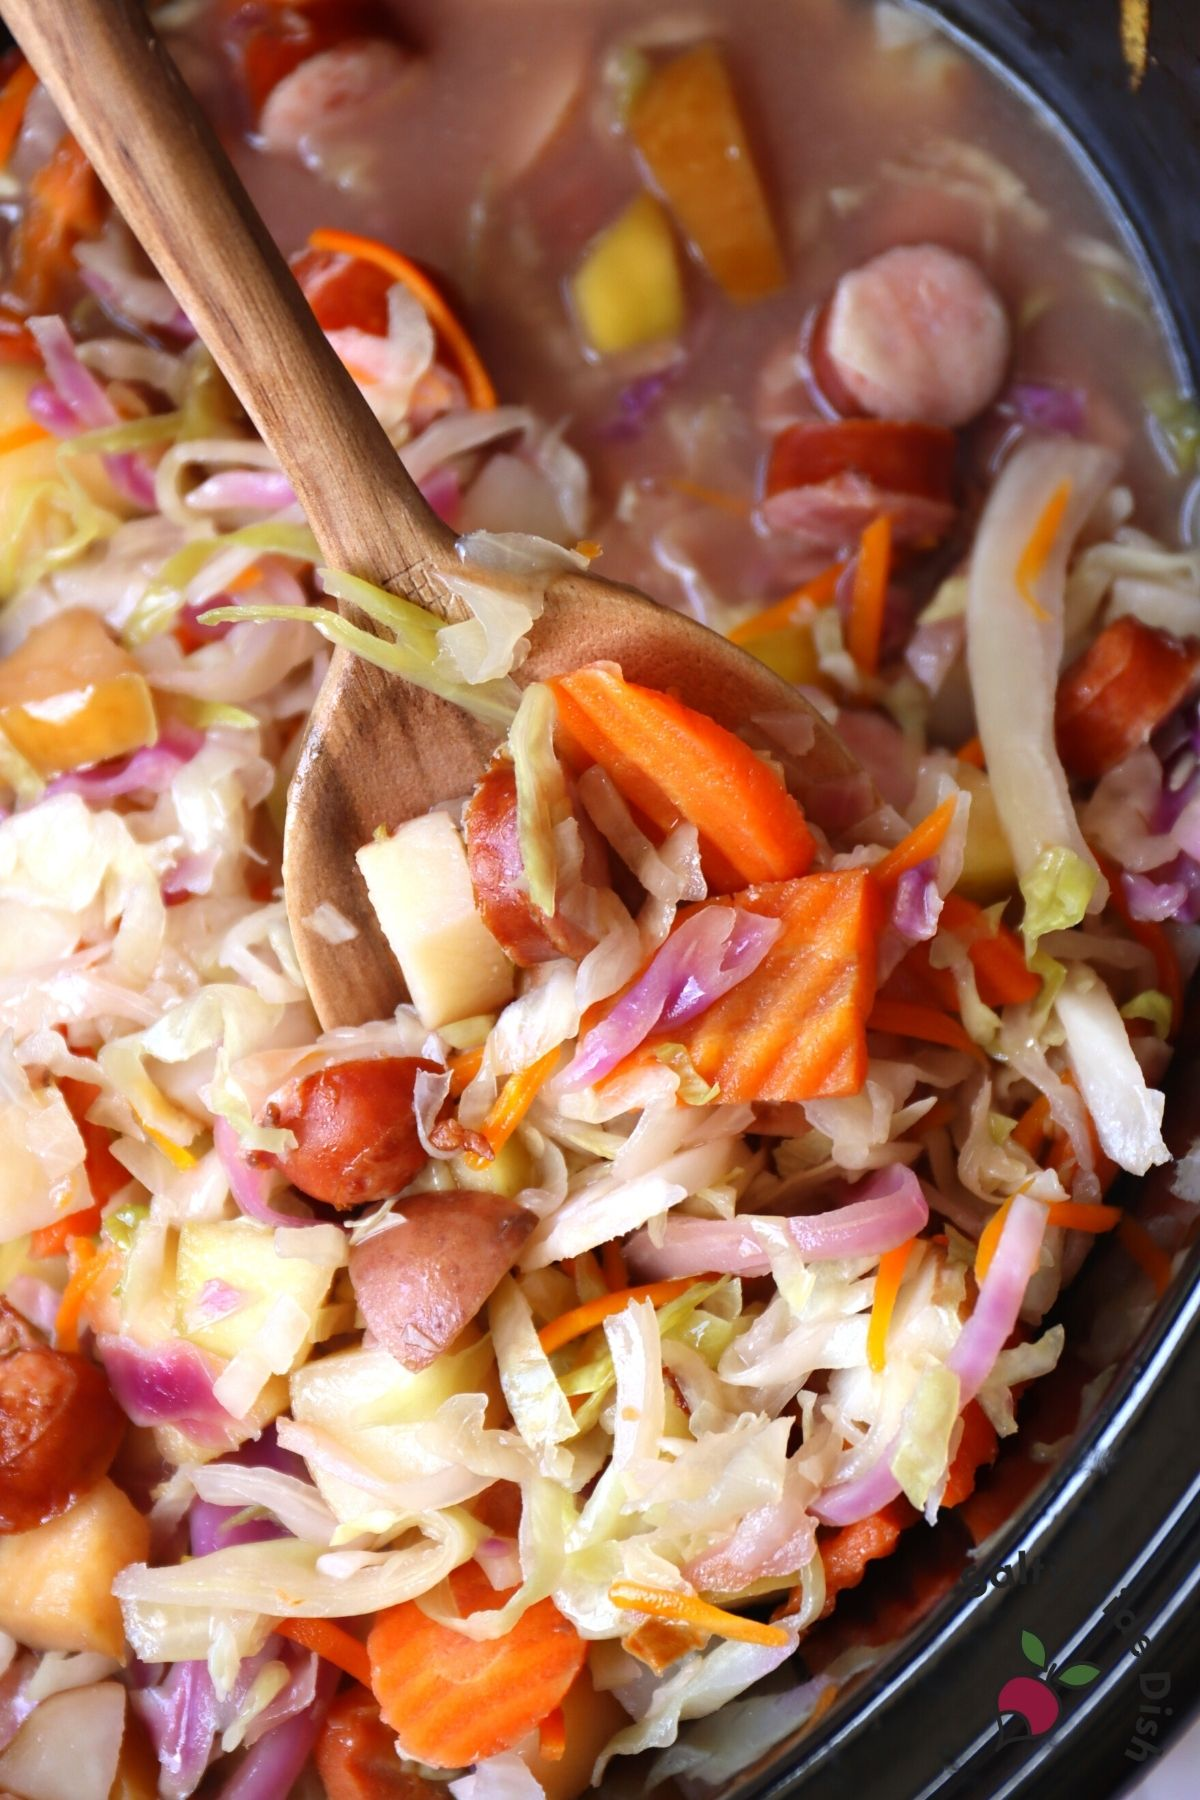 large slow cooker with sausage and cabbage stew on a wooden spoon